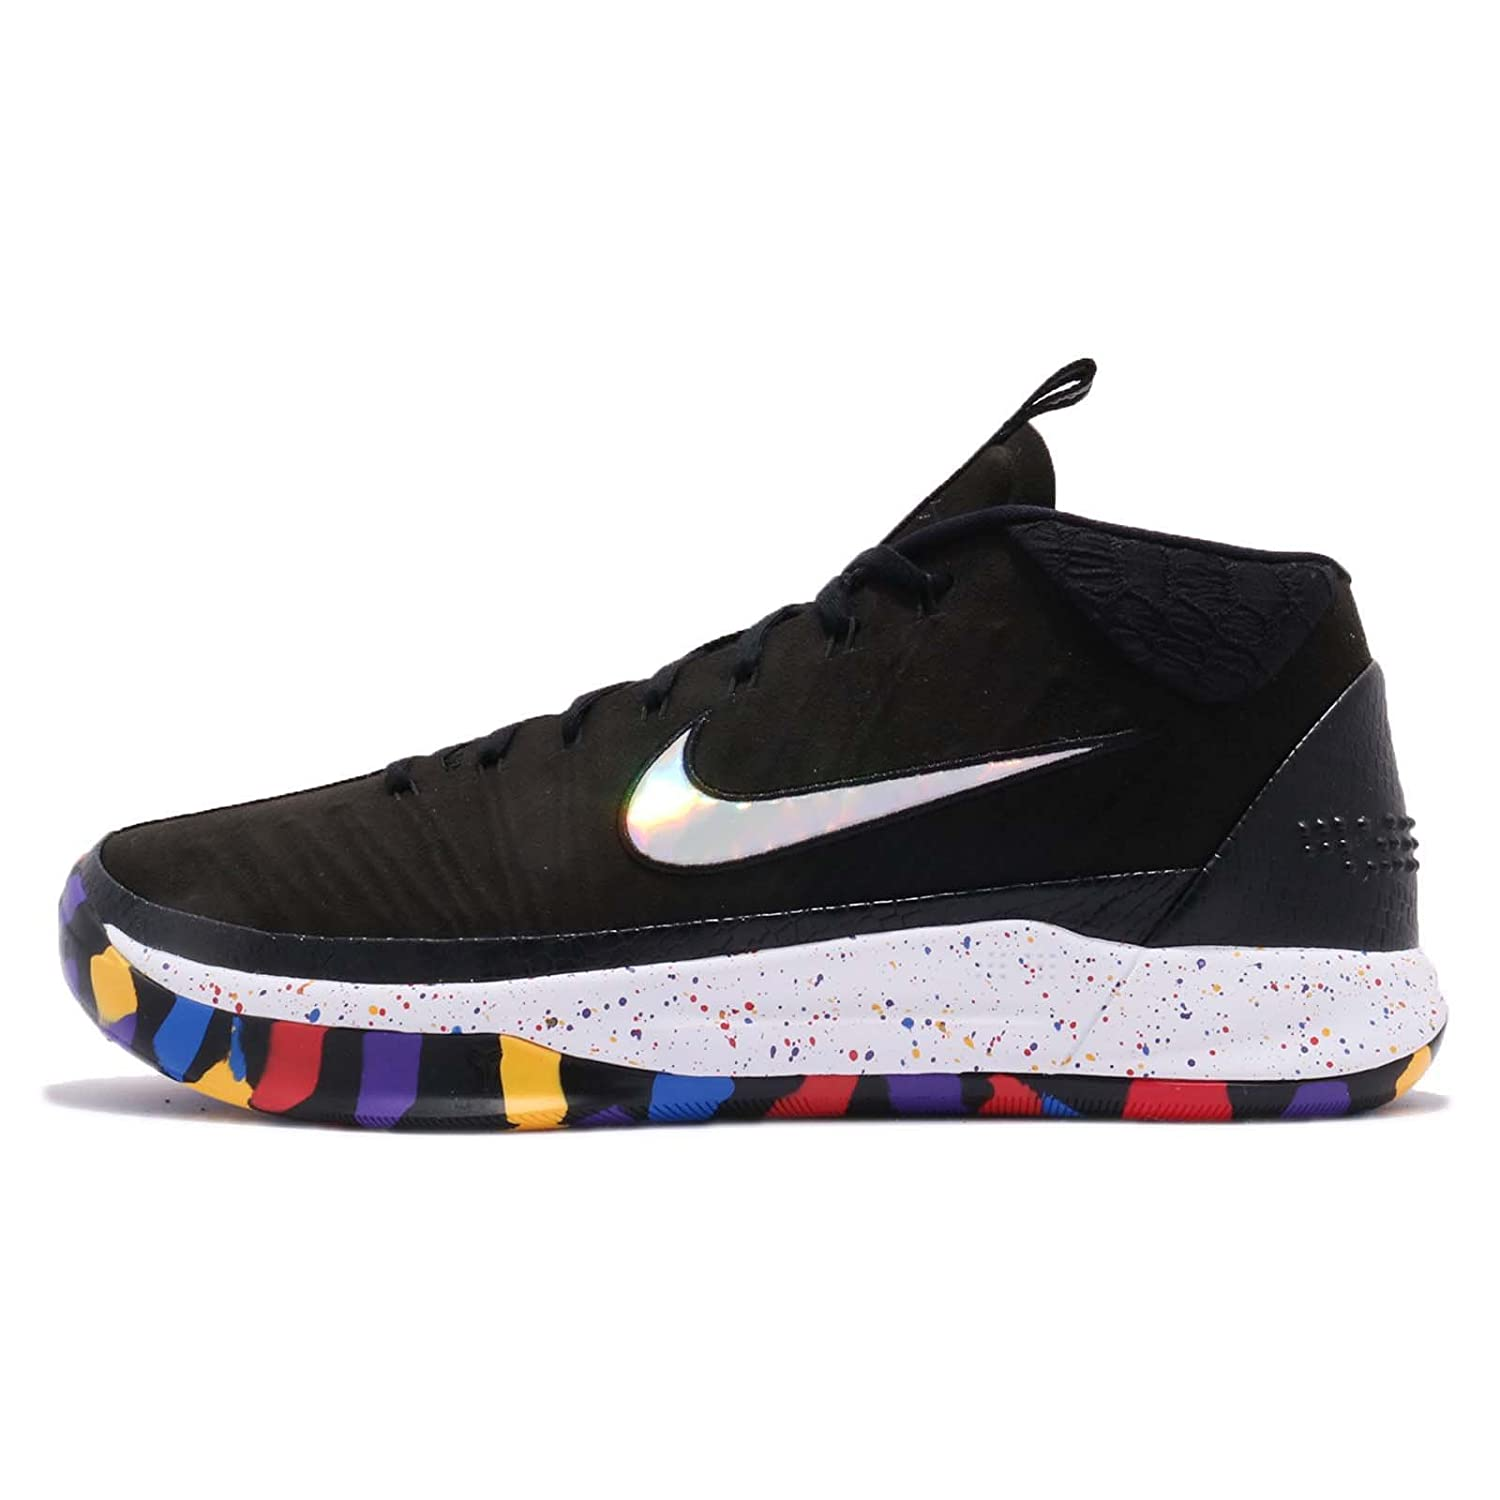 (ナイキ) コービー AD MM EP メンズ バスケットボール シューズ Nike Kobe AD MM EP March Madness NCAA AJ6922-001 [並行輸入品] B07BQMDQP7 28.0 cm BLACK/MULTI-COLOR